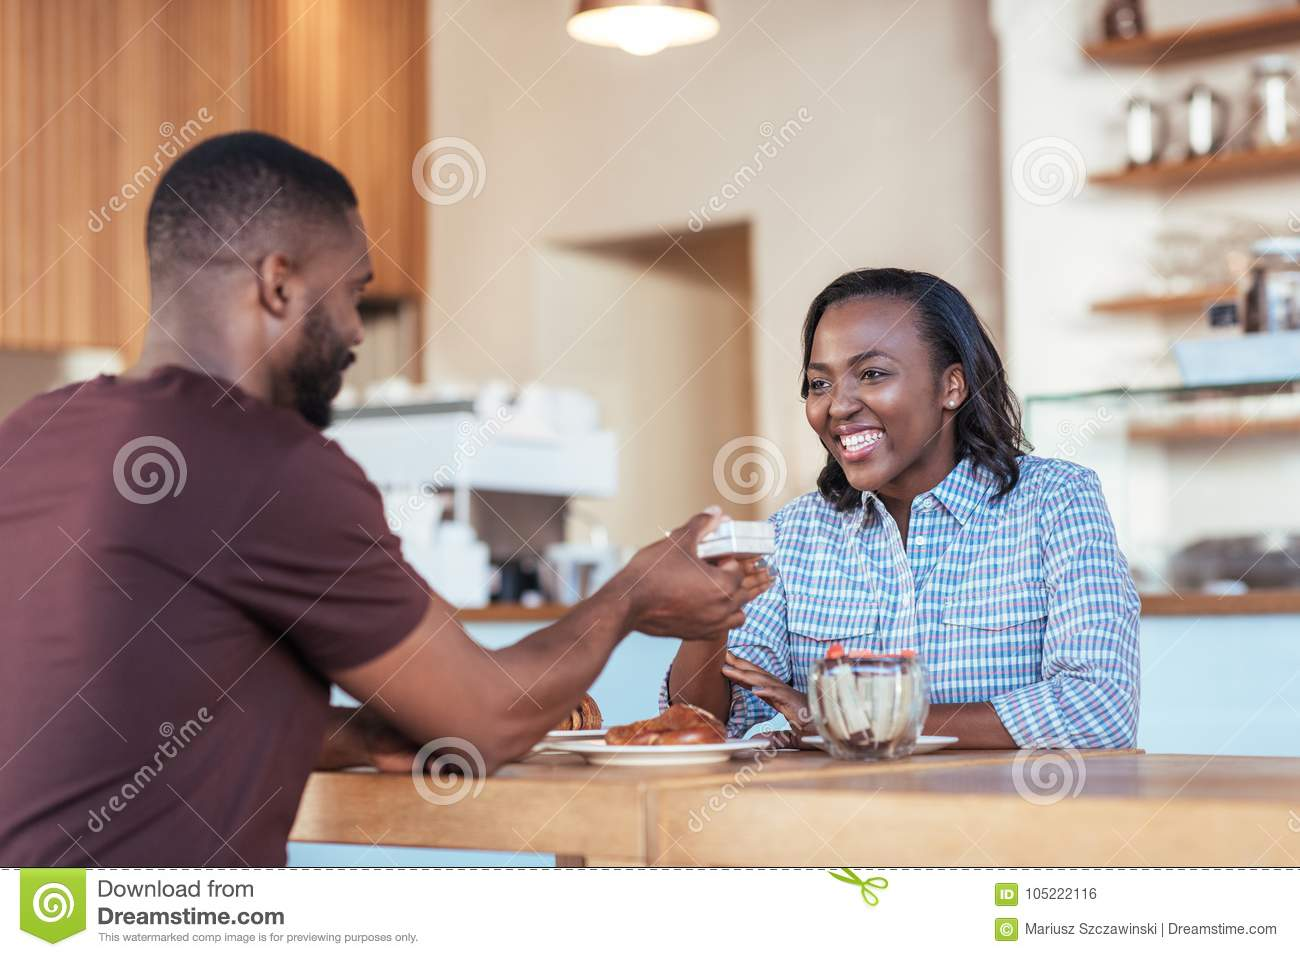 Young African man giving a present to his smiling girlfriend